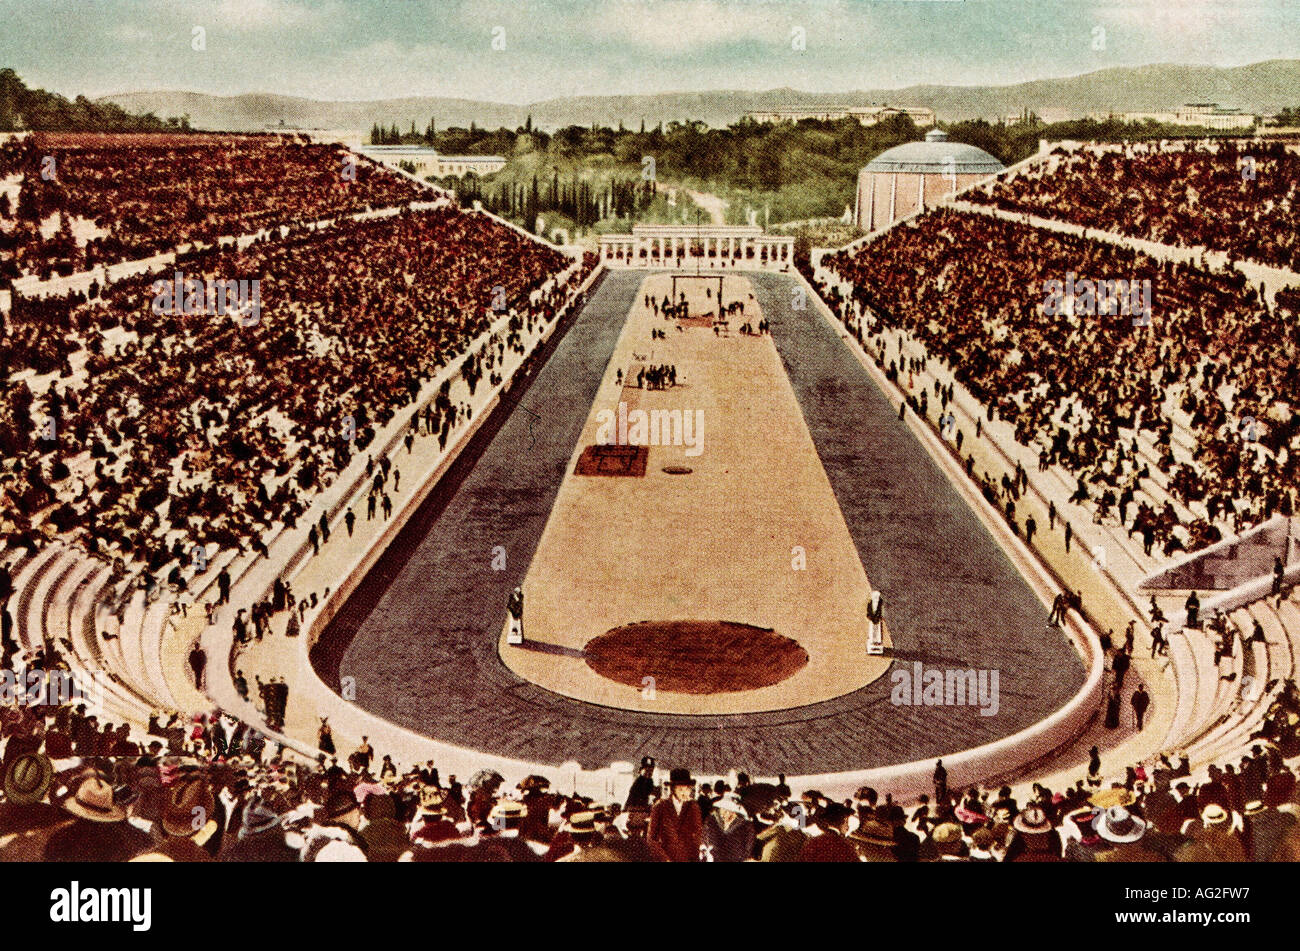 Sports olympic games stadium athens greece 1896 for The olympia